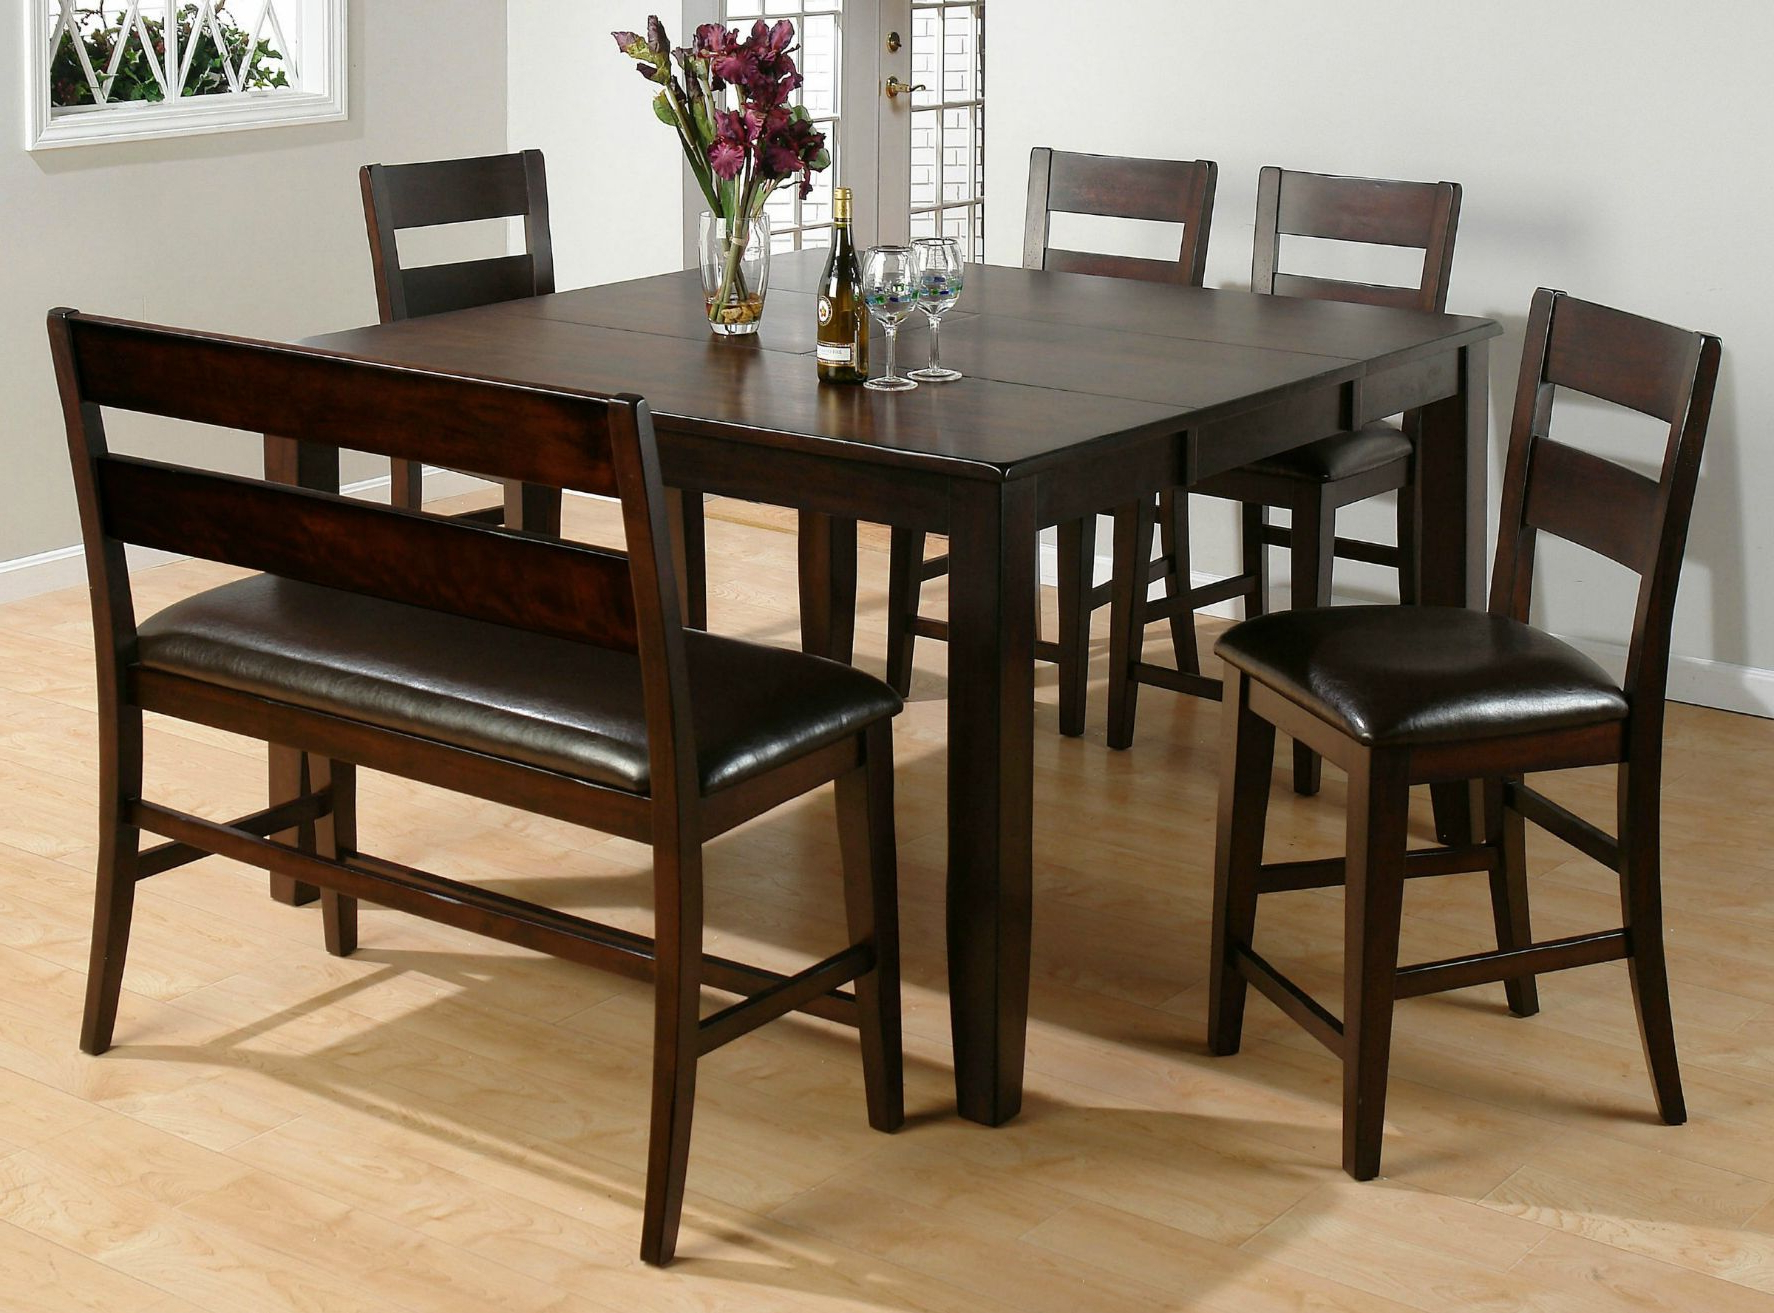 Fashionable Transitional 4 Seating Drop Leaf Casual Dining Tables Regarding 26 Dining Room Sets (big And Small) With Bench Seating ( (View 29 of 30)